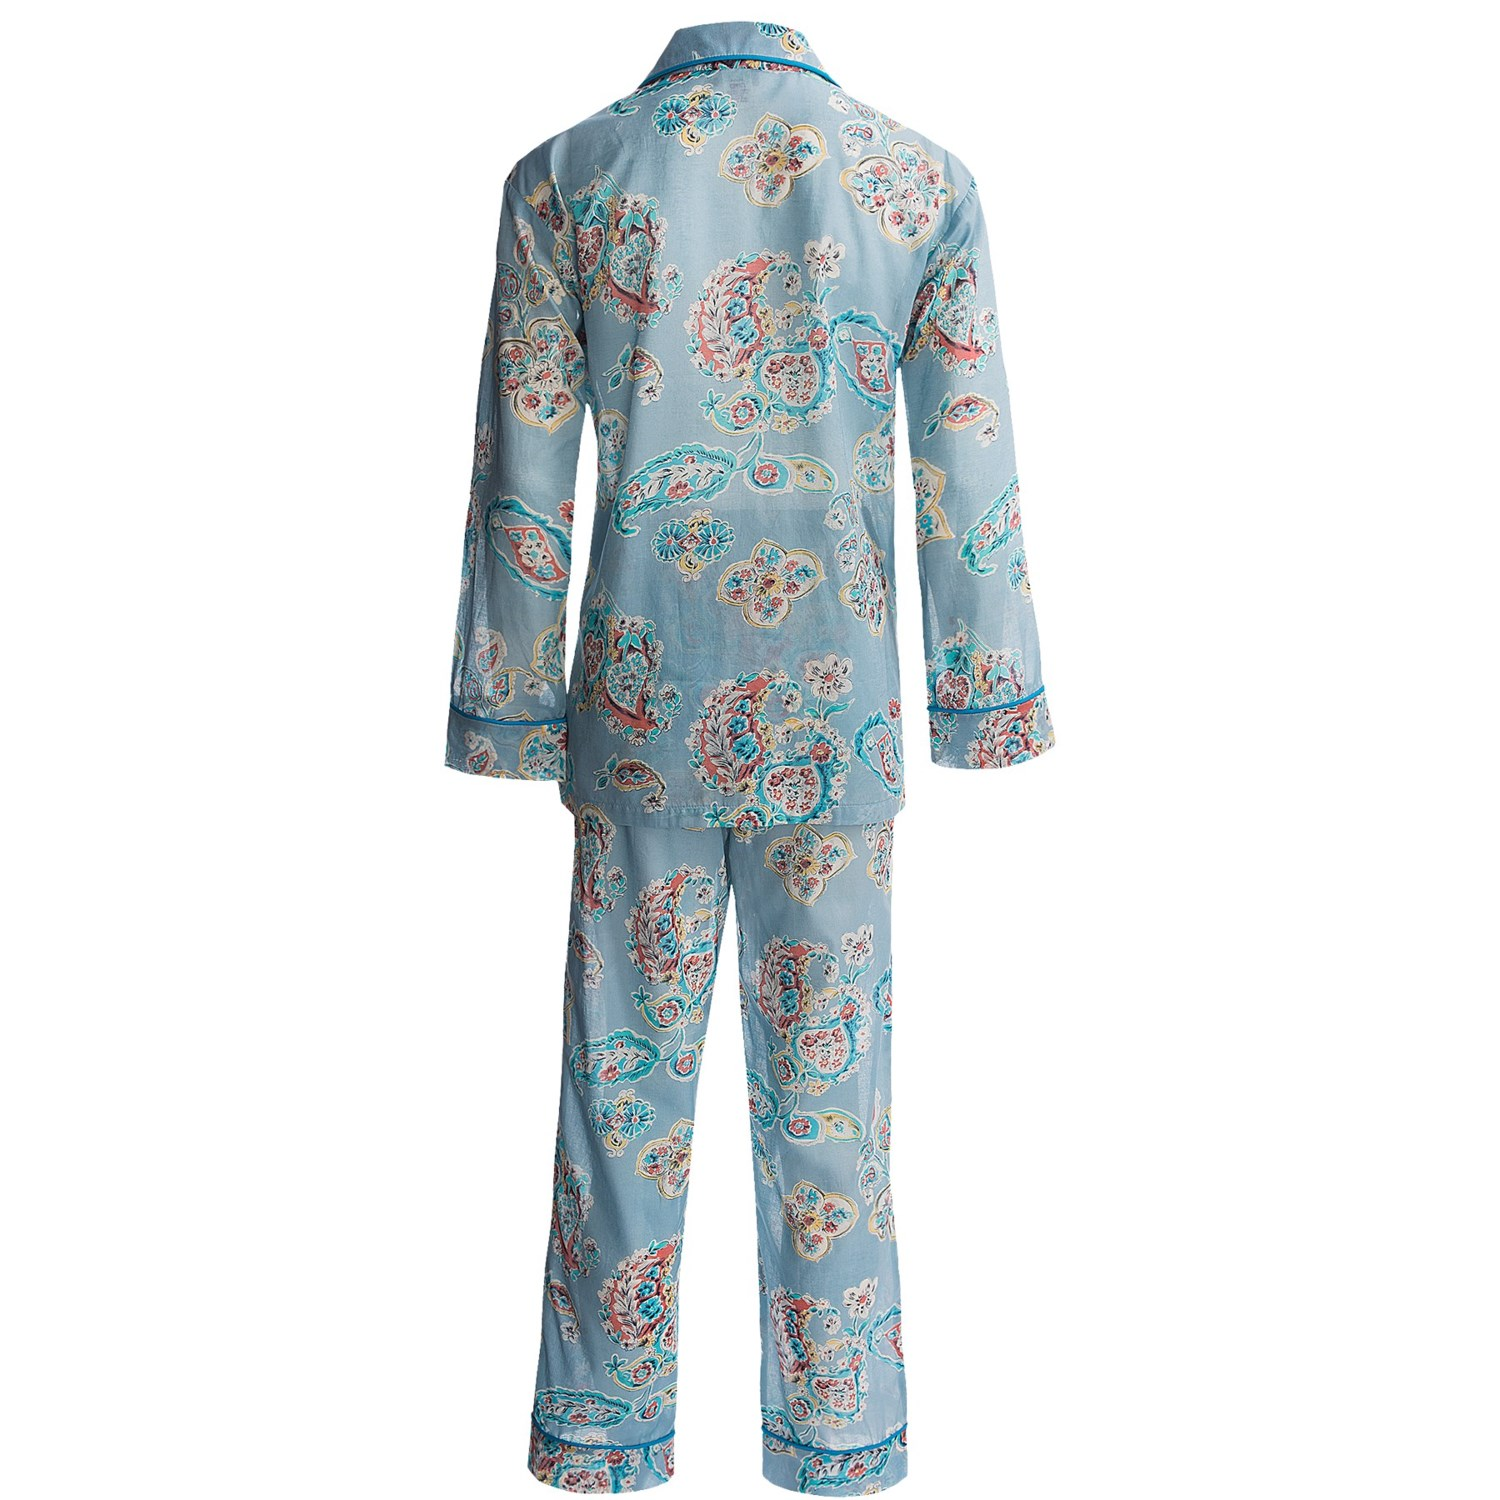 BedHead Pajamas @bedheadpajamas. Pajamas, couture loungewear made in Los Angeles. A favorite of celebs - find deals here you won't find anywhere else!